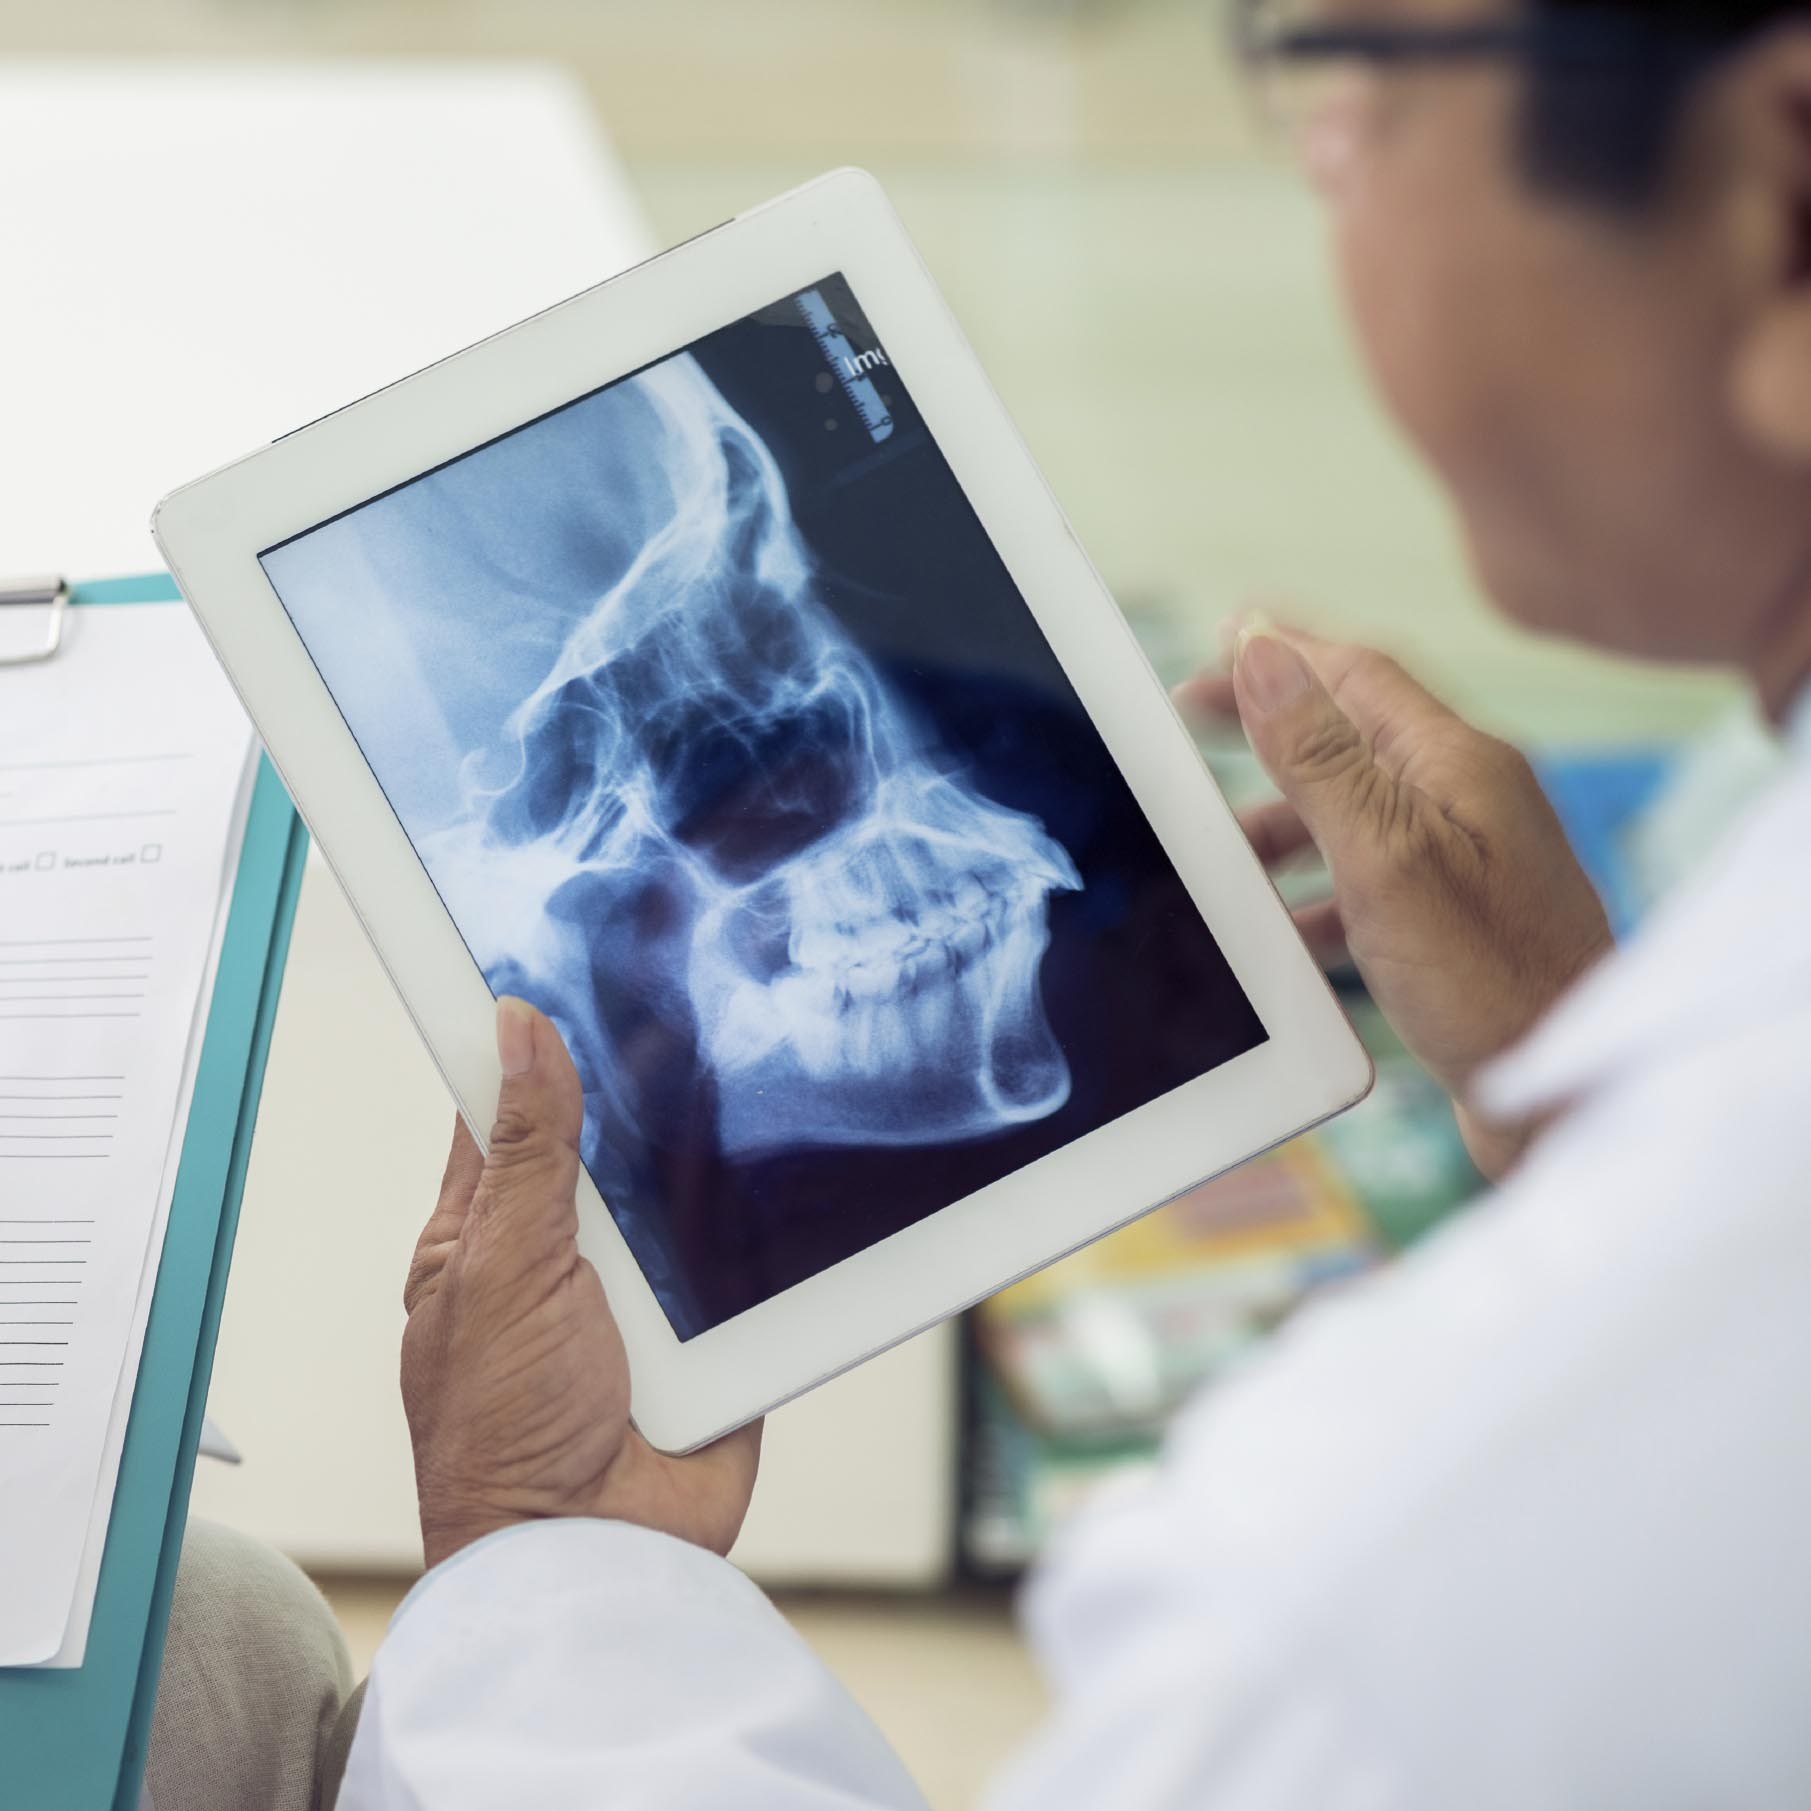 A traditional dental x-ray